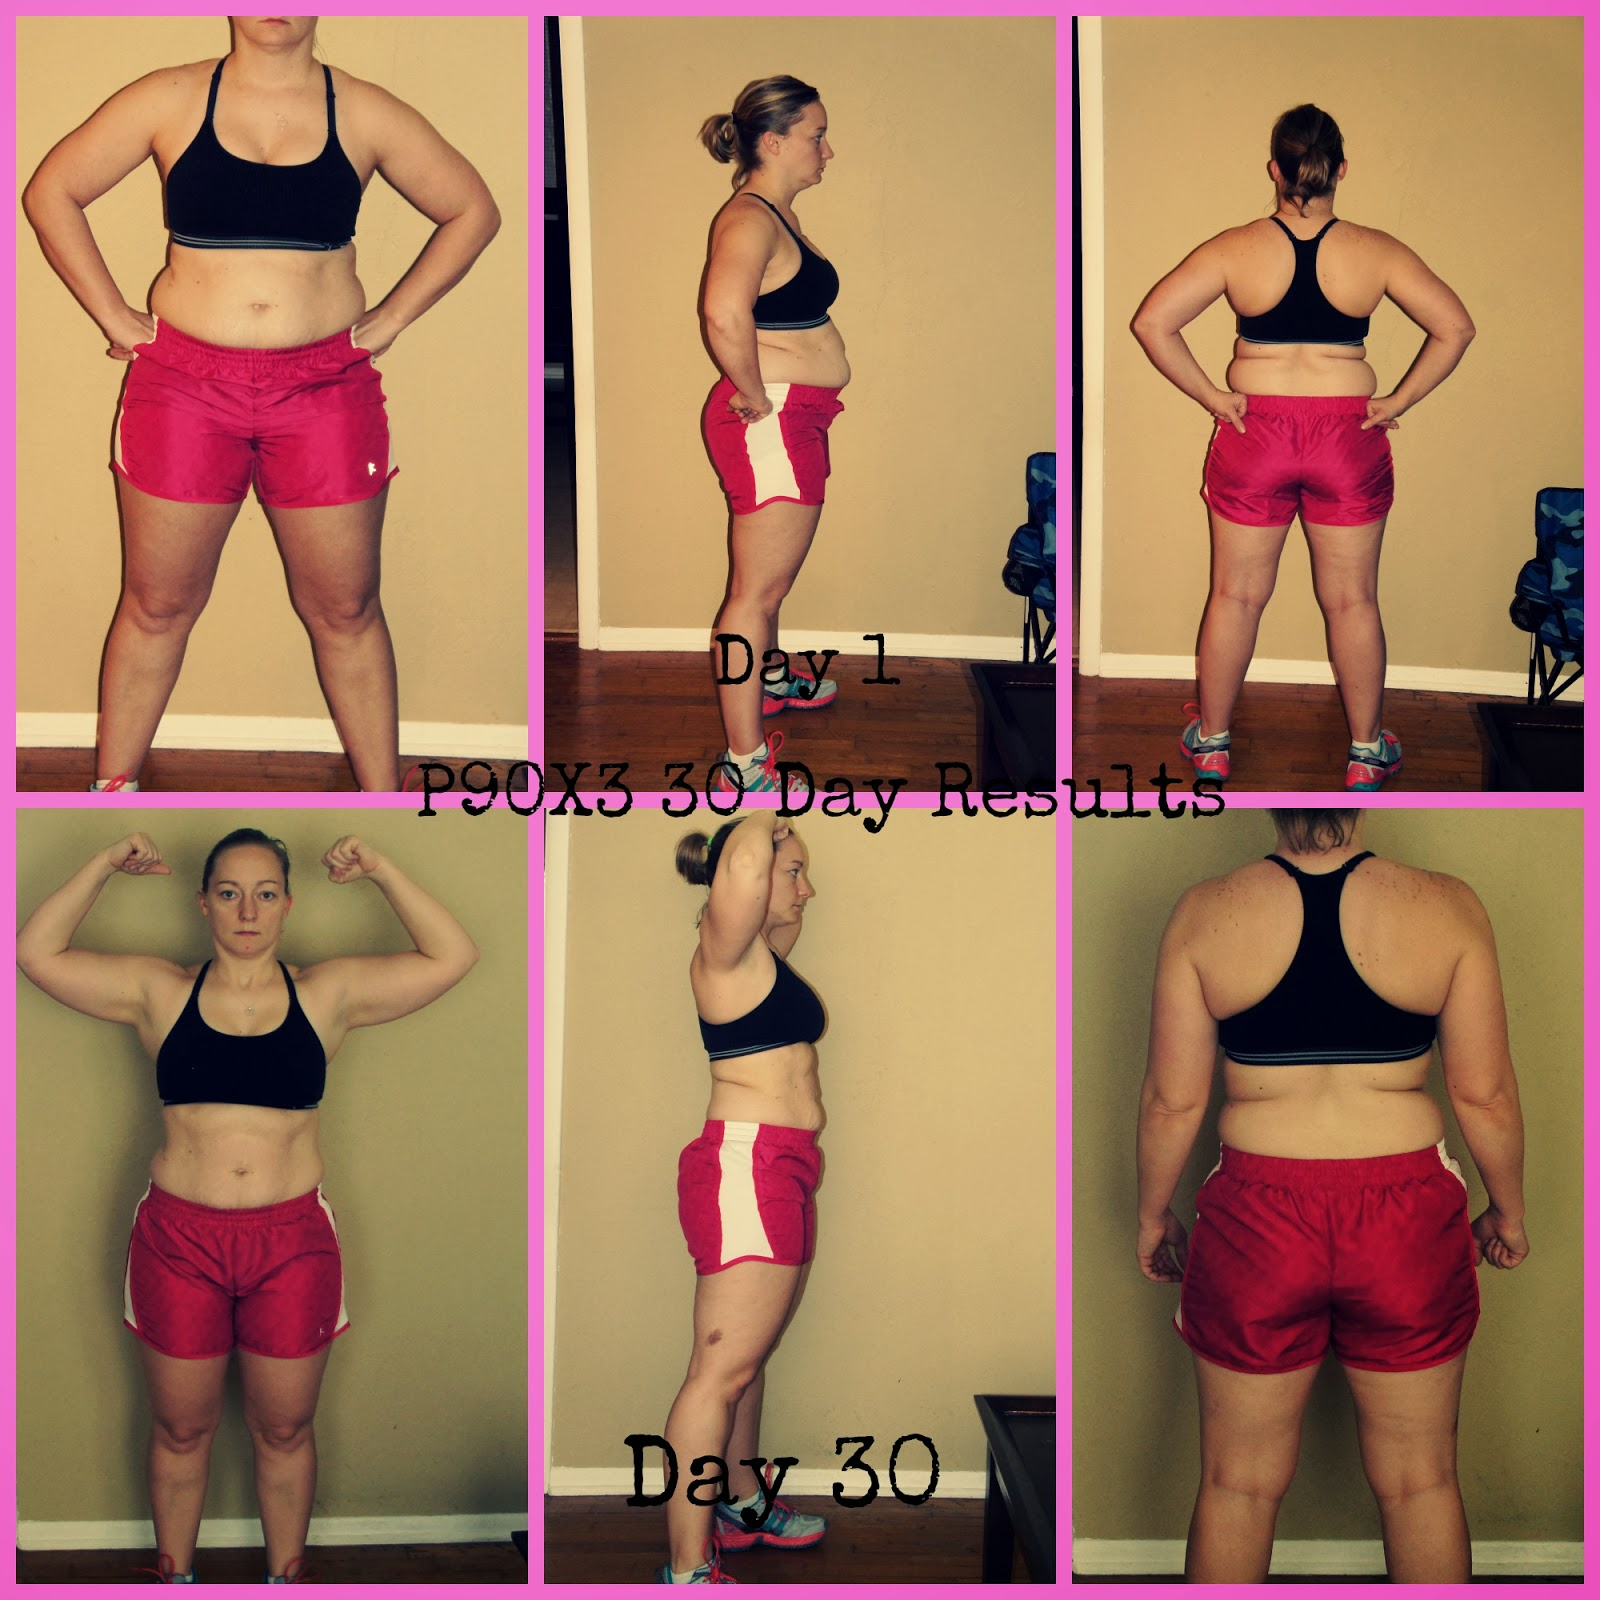 The Renaissance Woman P90x3 Journey 30 Day Results